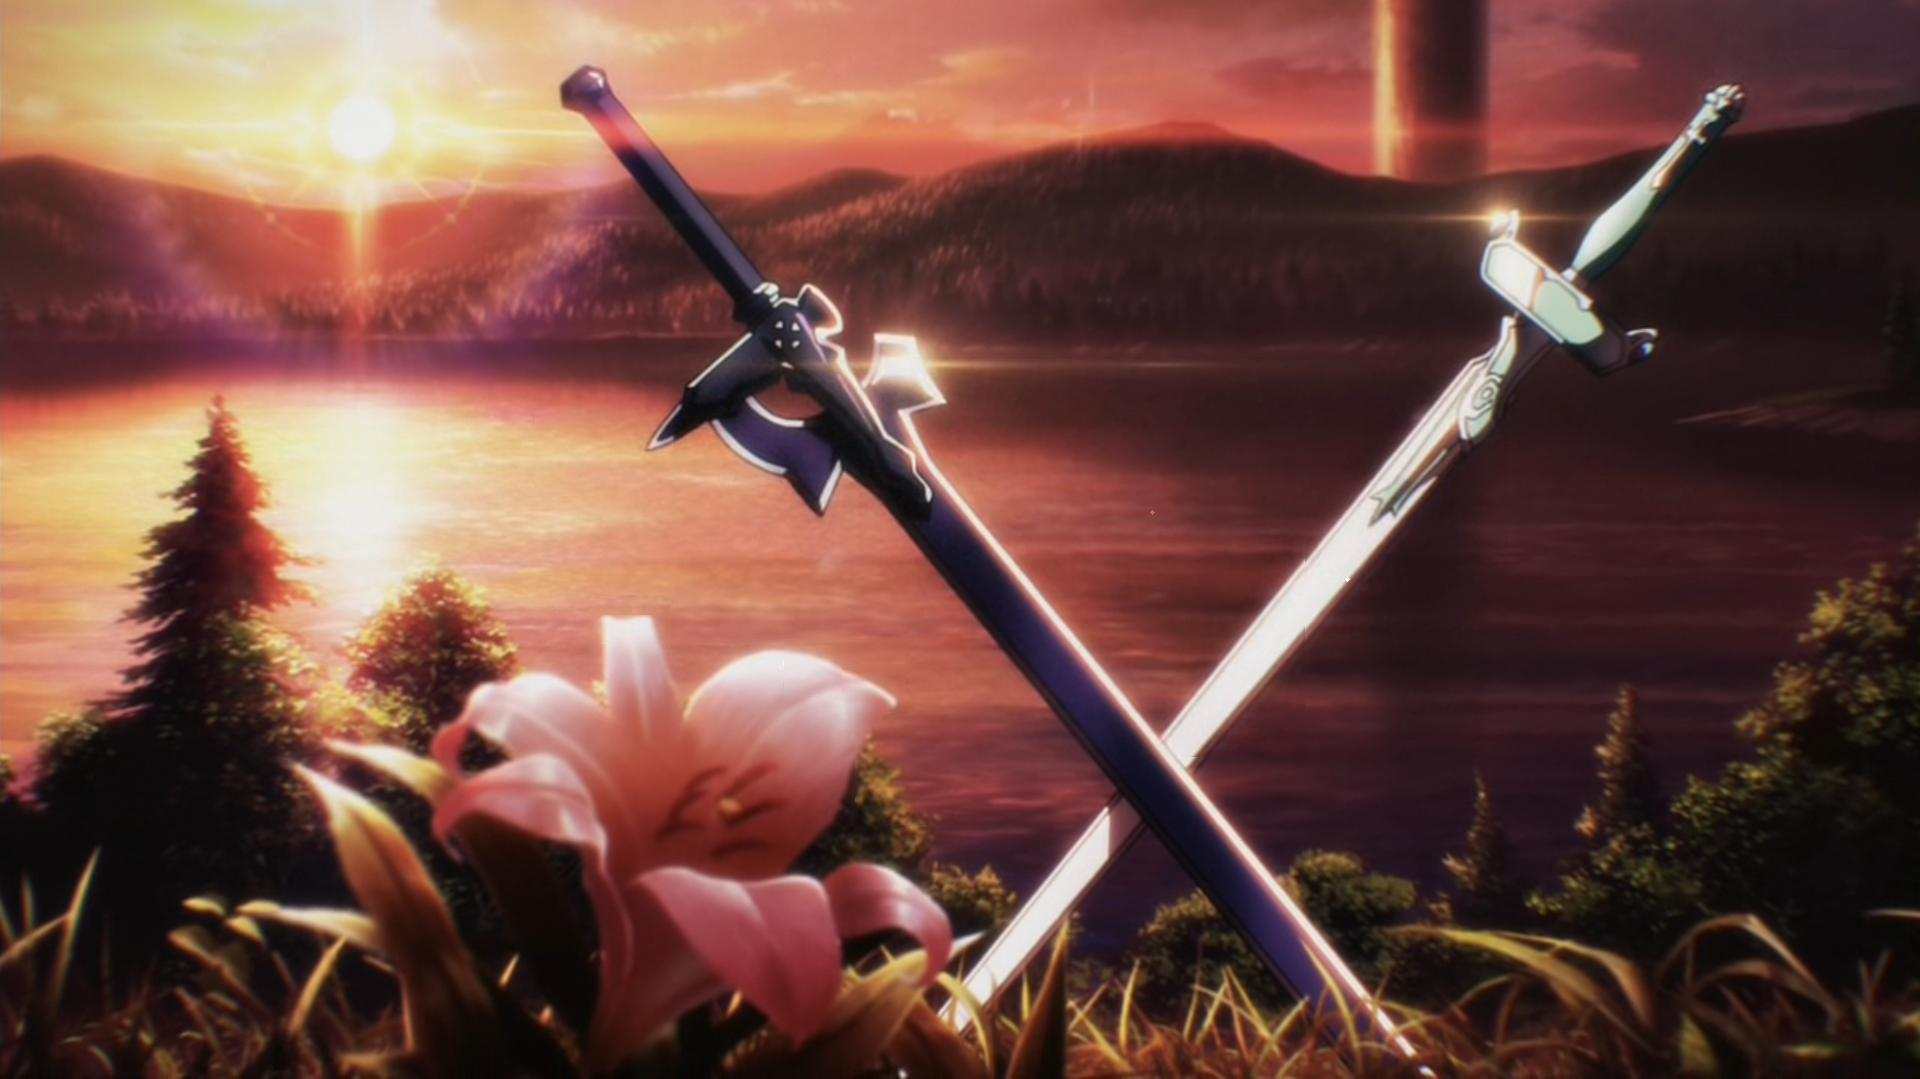 hd-1080p-sword-art-online-Pesquisa-Google-wallpaper-wp36012067